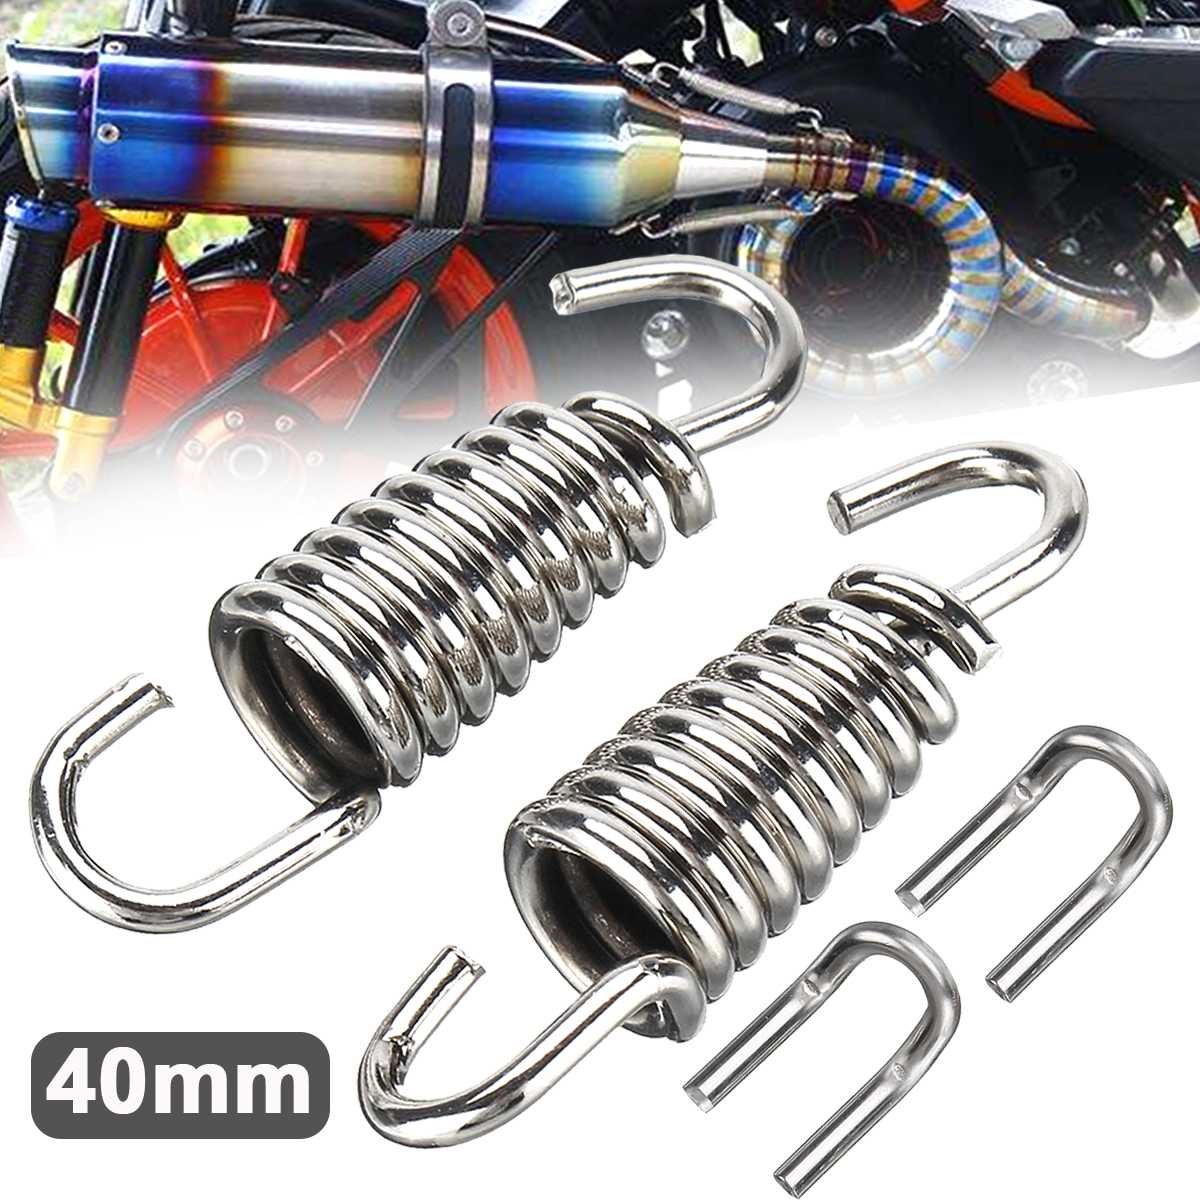 2pcs 40mm Stainless Steel Exhaust Muffler Springs Expansion Chambers Manifold Link Pipe image